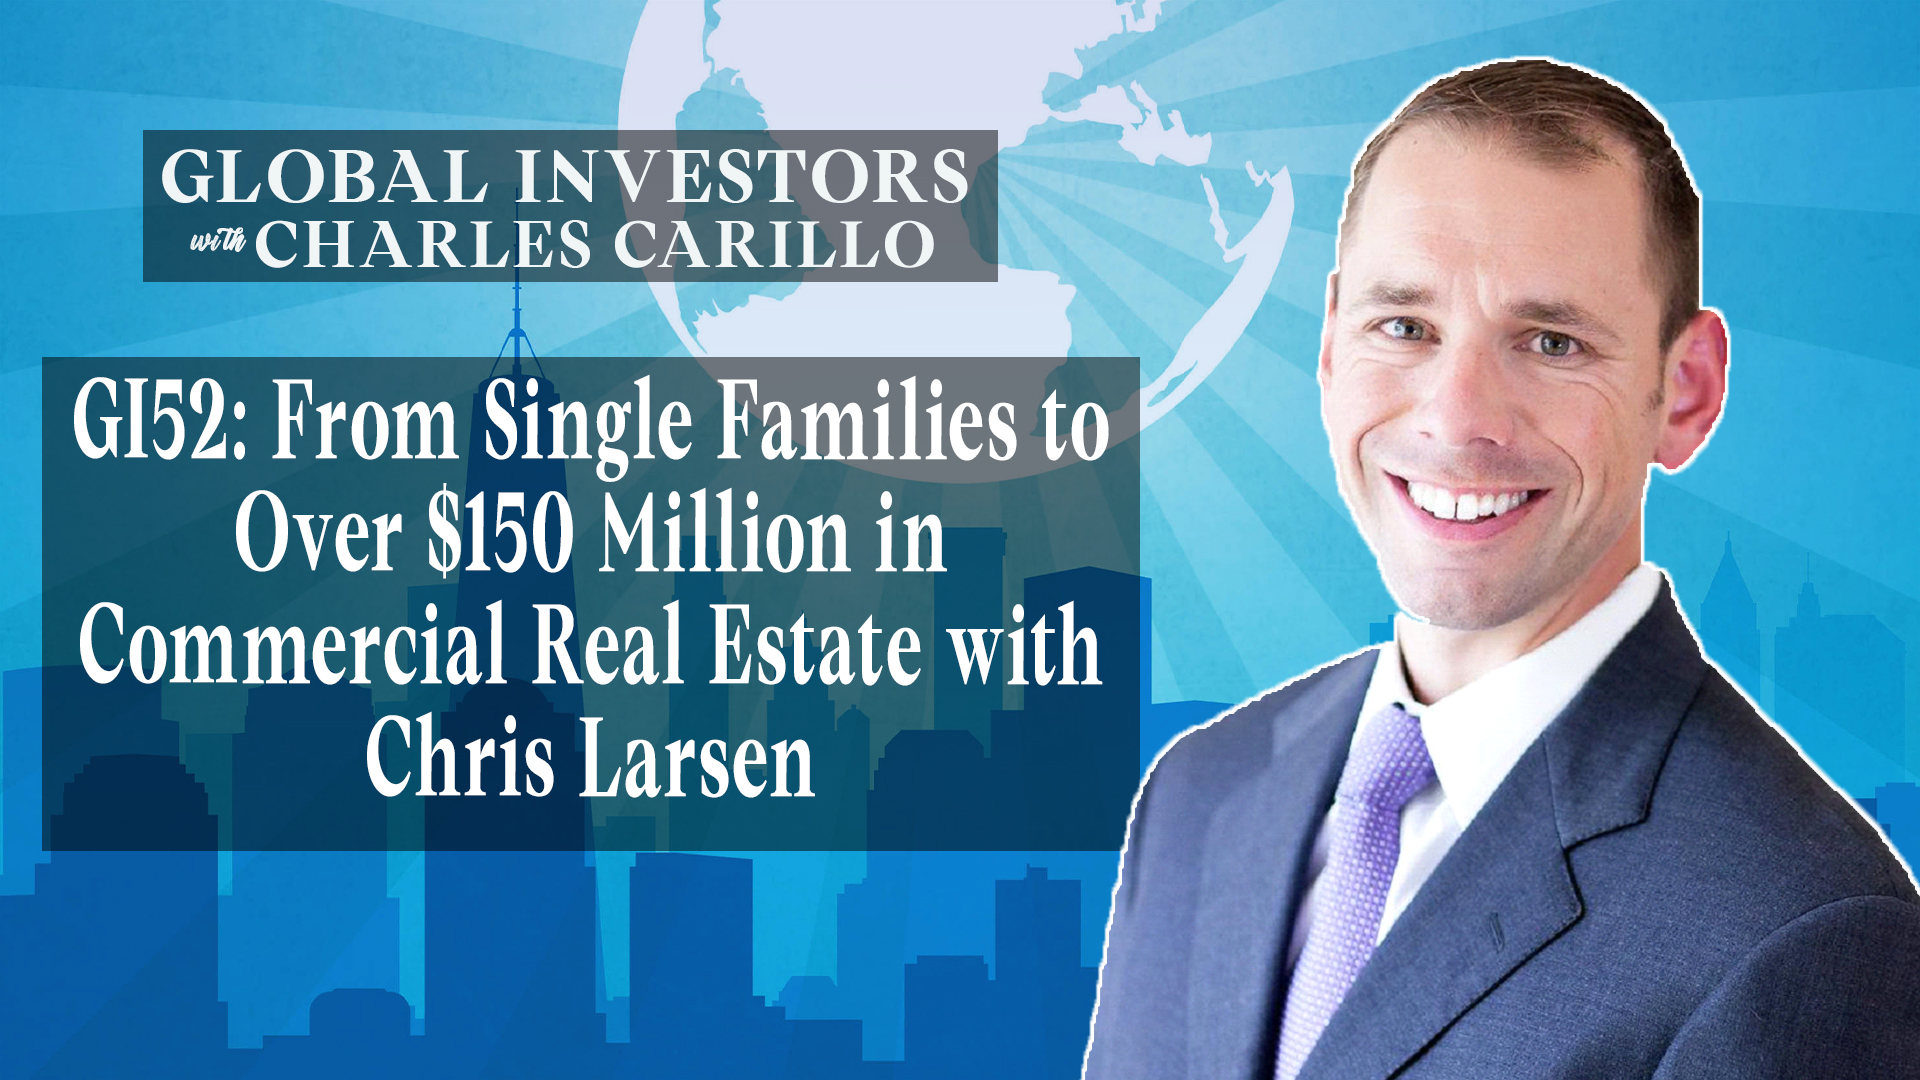 GI52: From Single Families to Over $150 Million in Commercial Real Estate with Chris Larsen